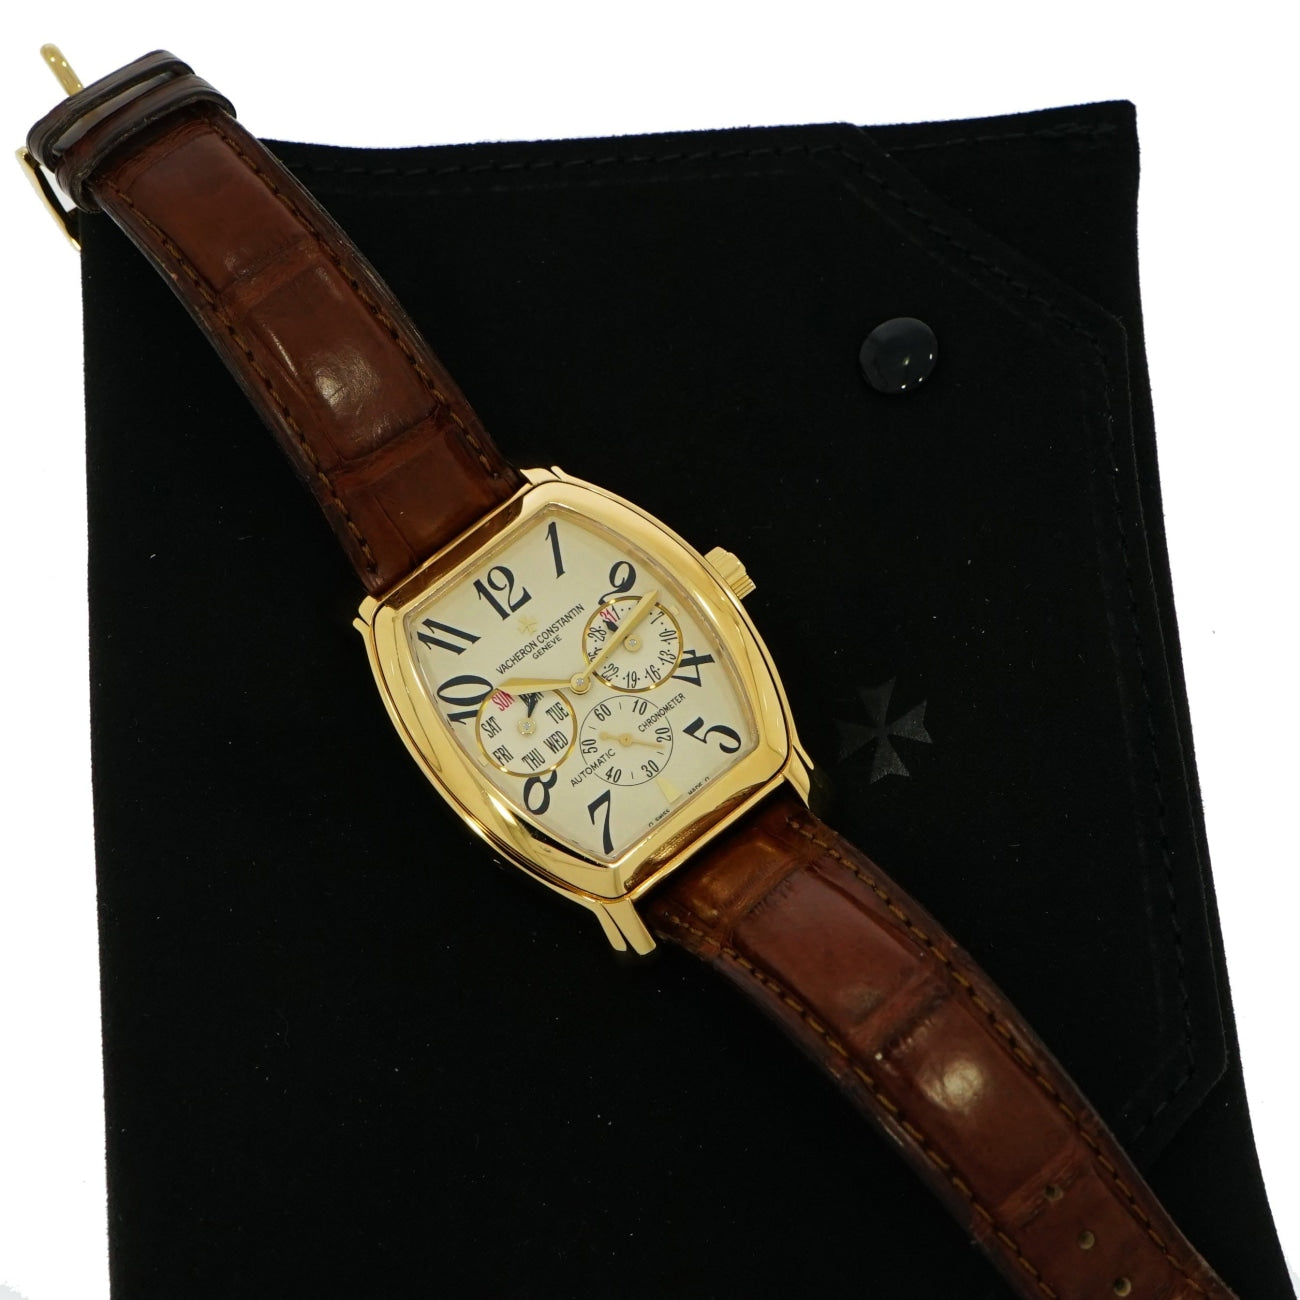 Pre-Owned Vacheron Constantin Watches - Vacheron Constantin Royal Eagle Day/Date in 18 Karat Yellow Gold | Manfredi Jewels